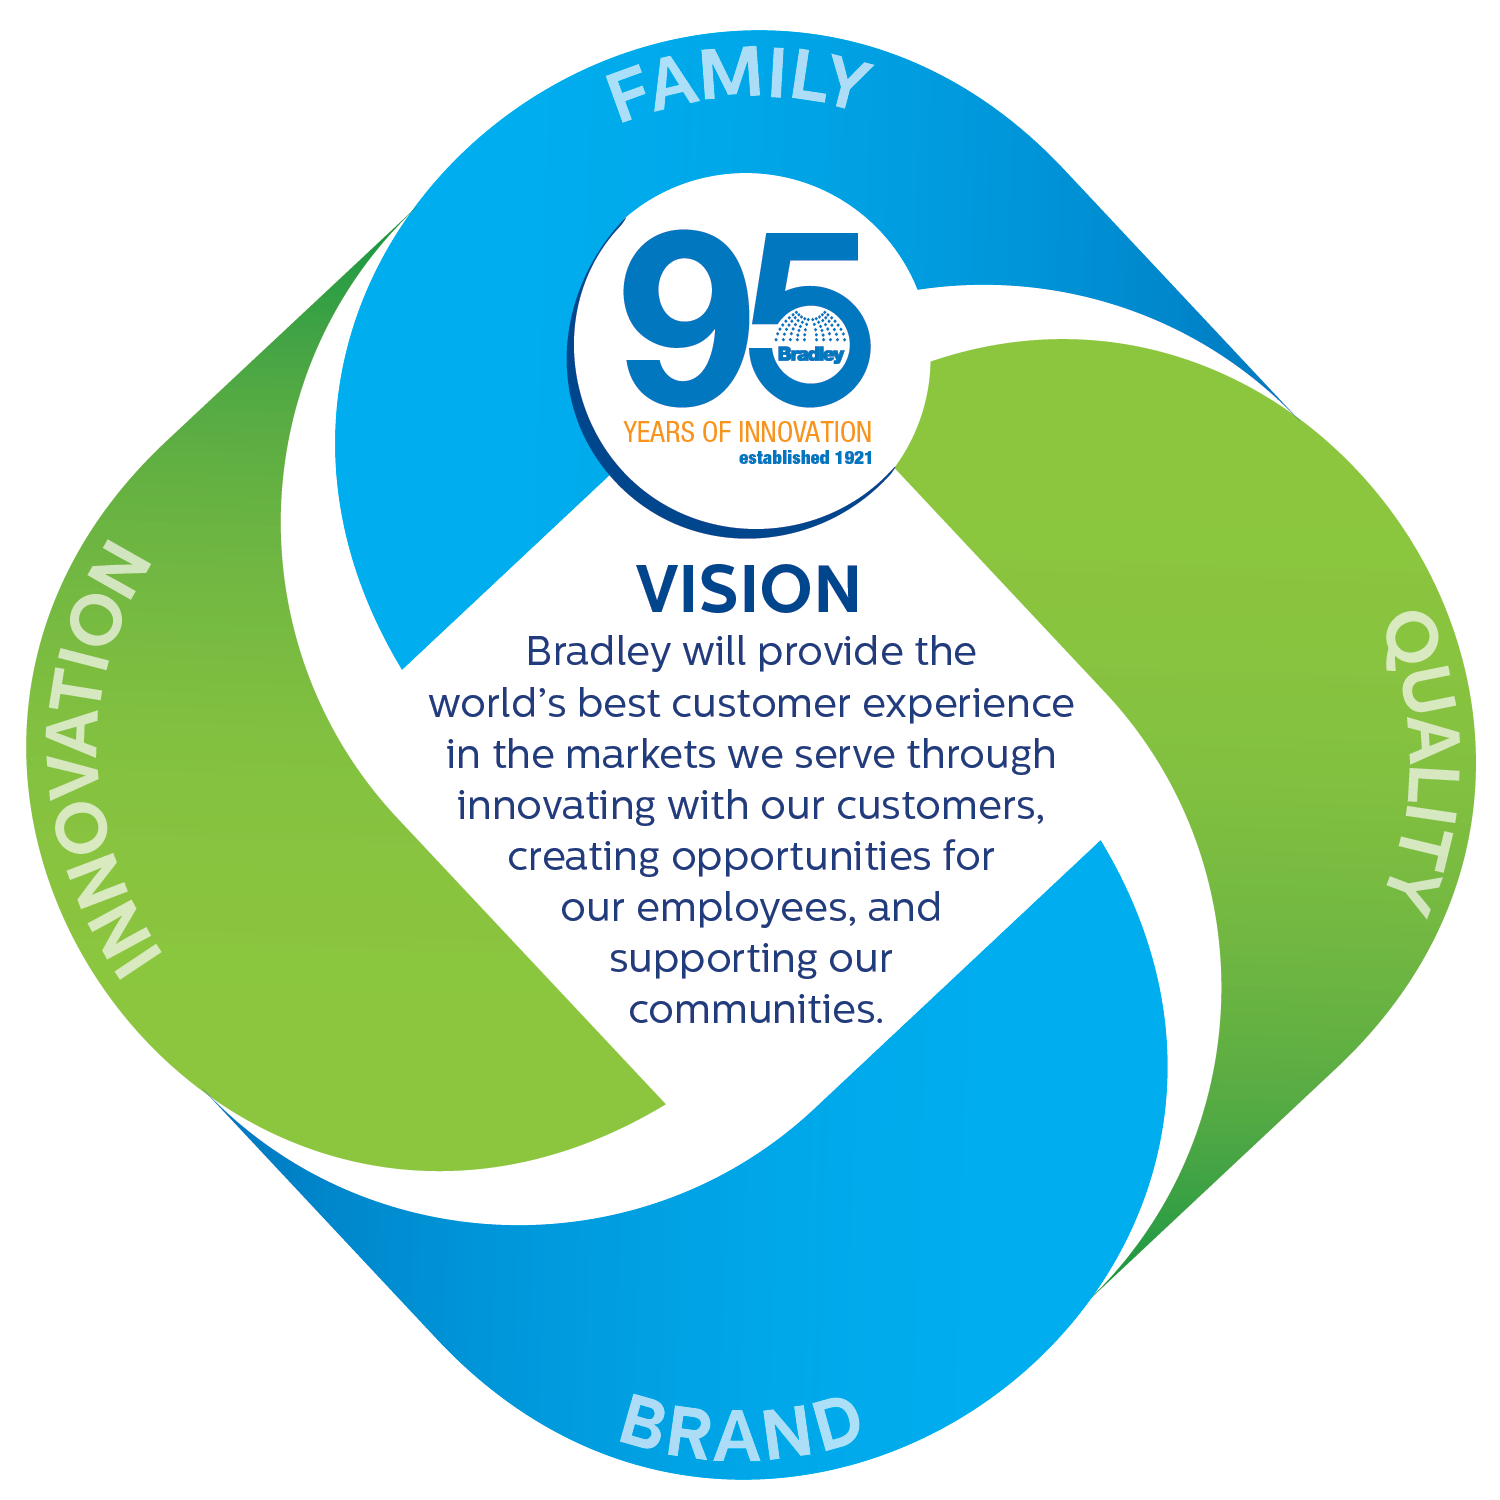 Bradley will provide the worlds best customer experience in the markets we serve through innovating with our customers, creating opportunities for our employees, and supporting our communities